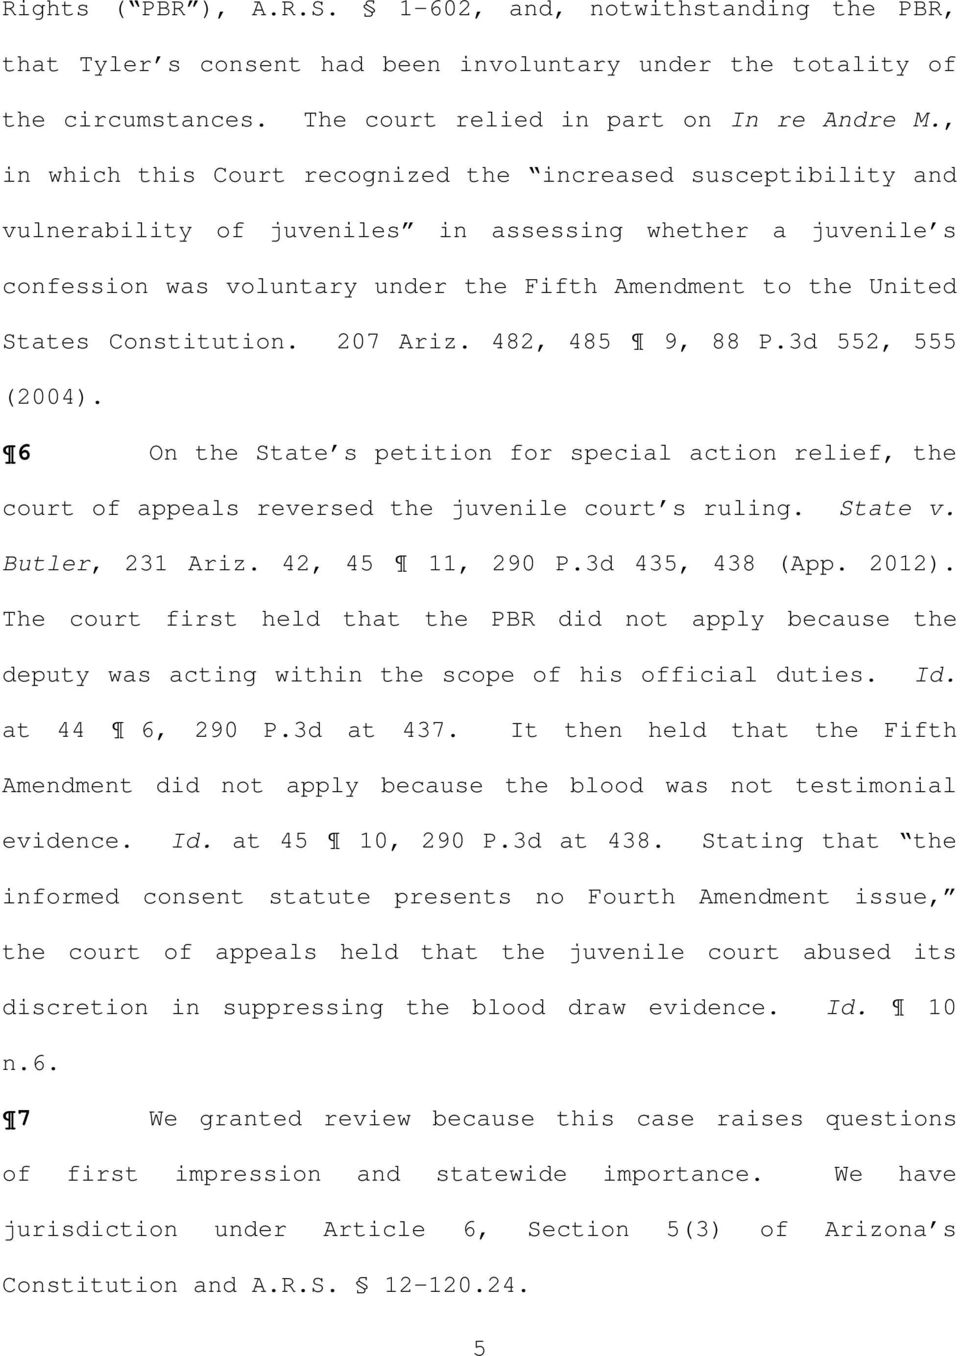 Constitution. 207 Ariz. 482, 485 9, 88 P.3d 552, 555 (2004). 6 On the State s petition for special action relief, the court of appeals reversed the juvenile court s ruling. State v. Butler, 231 Ariz.